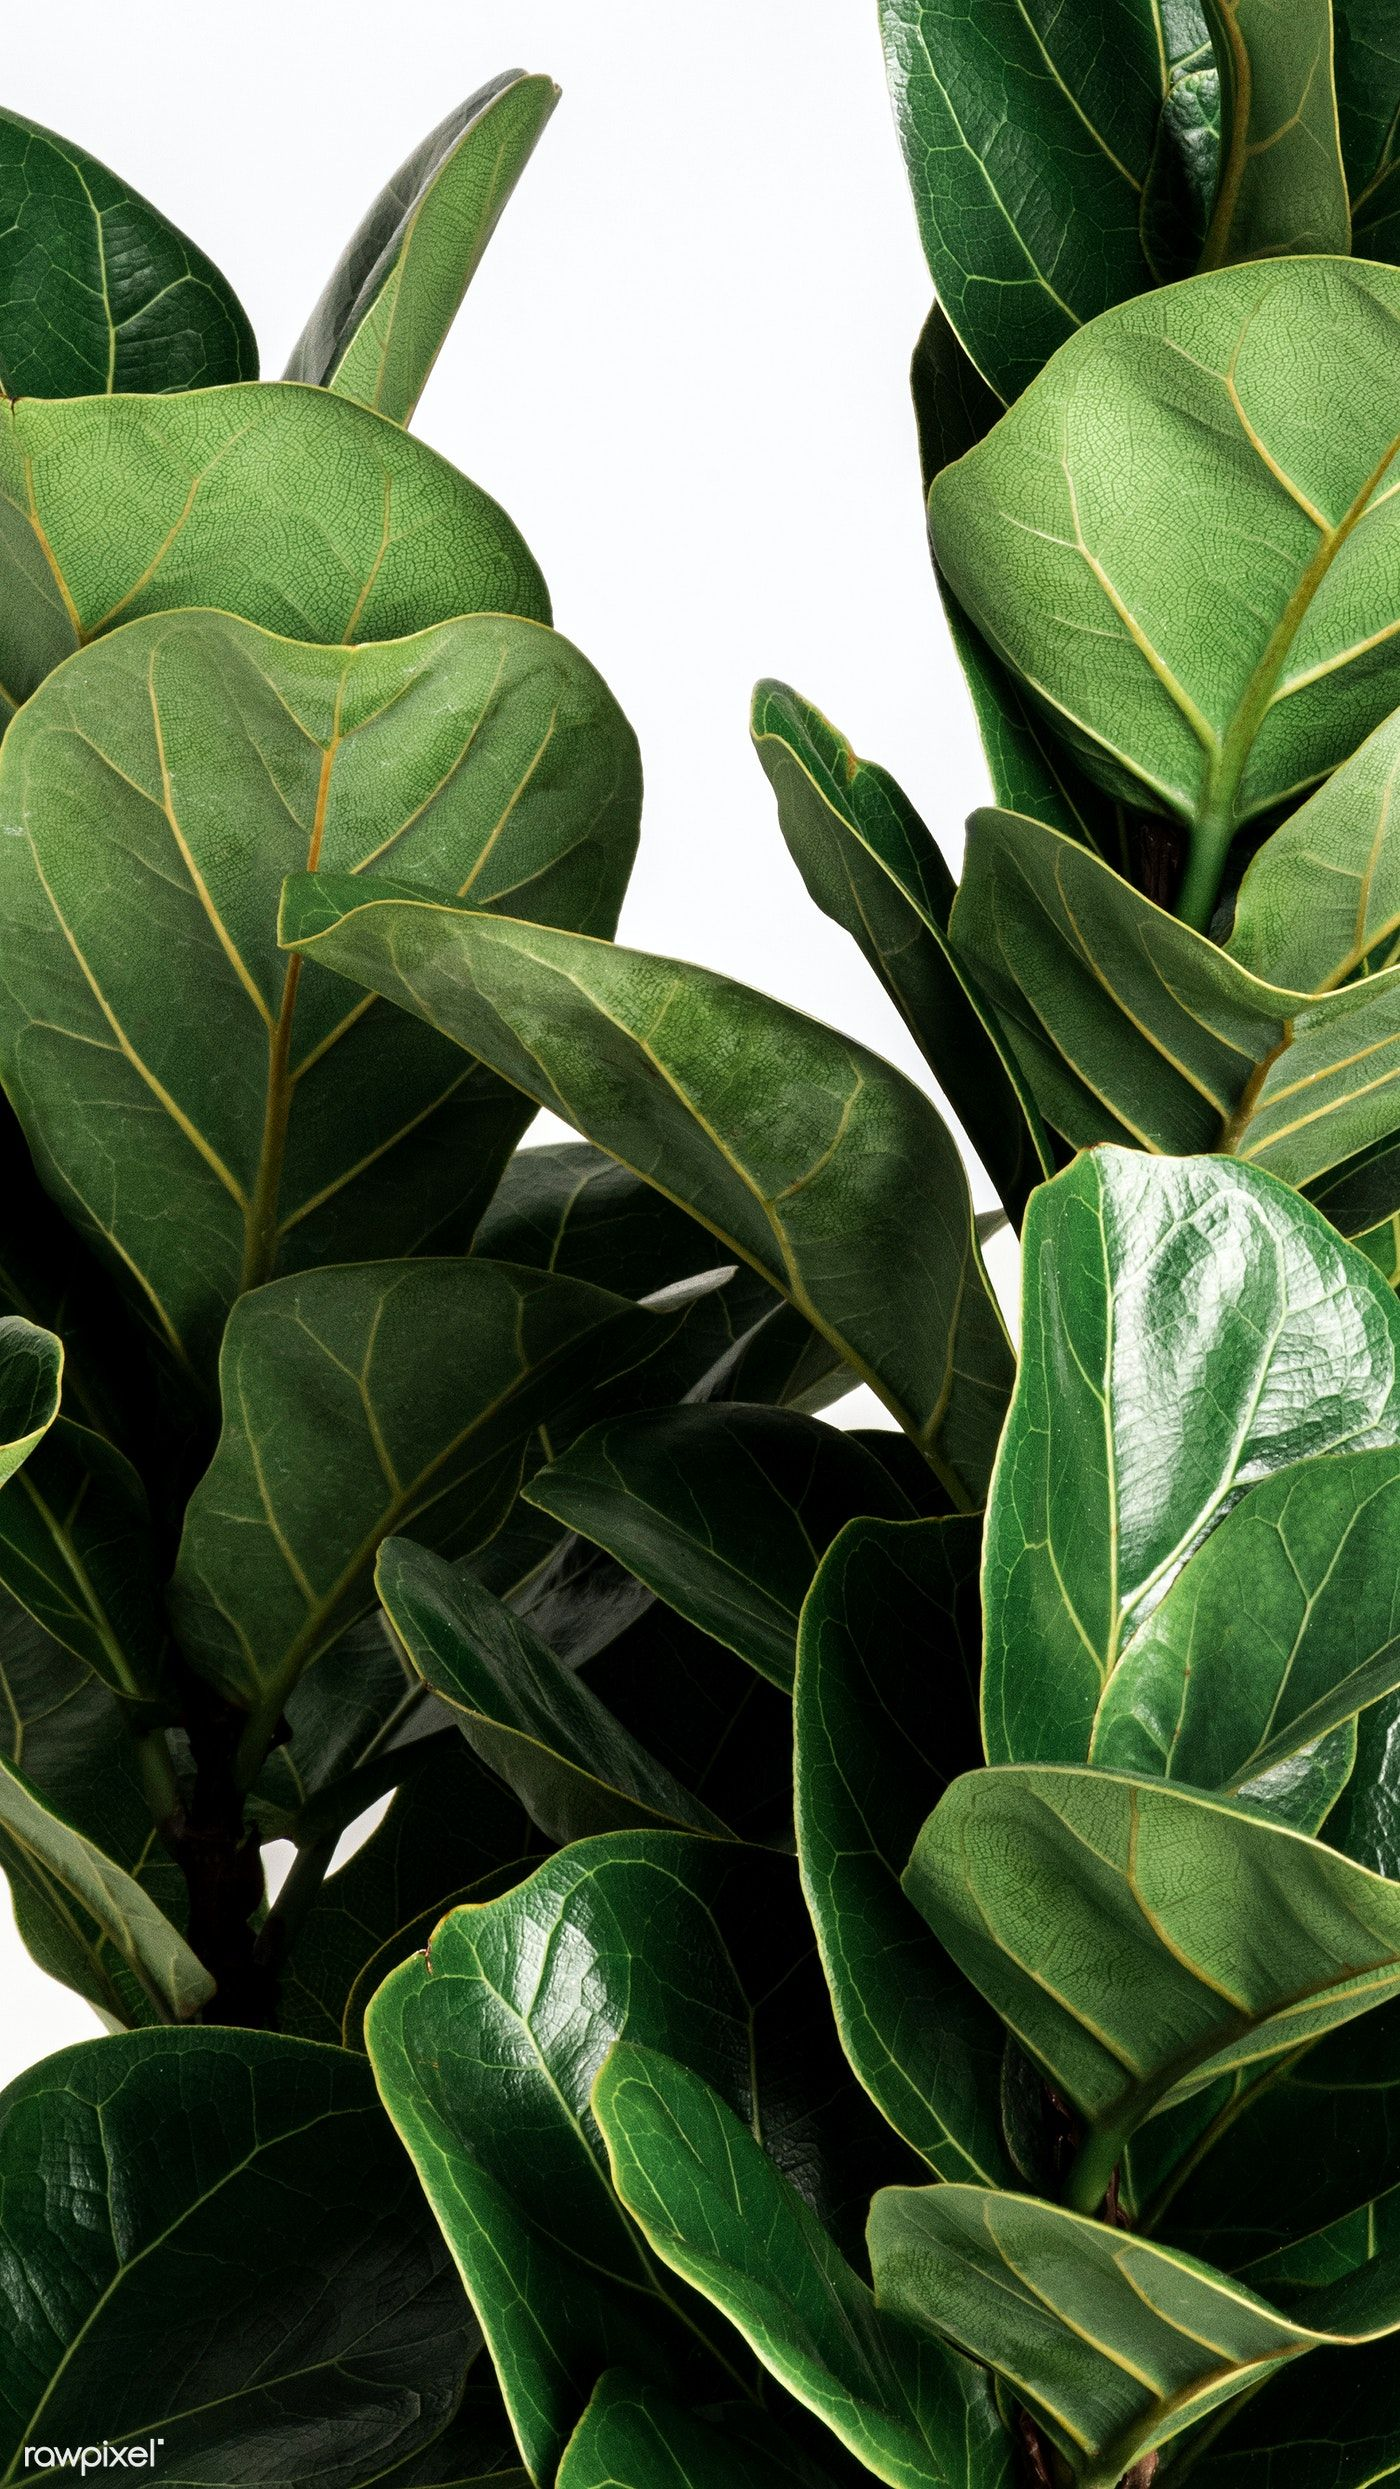 Download Premium Image Of Fiddle Leaf Fig Plant On An Off White Background Leaf Photography Plant Aesthetic Plants